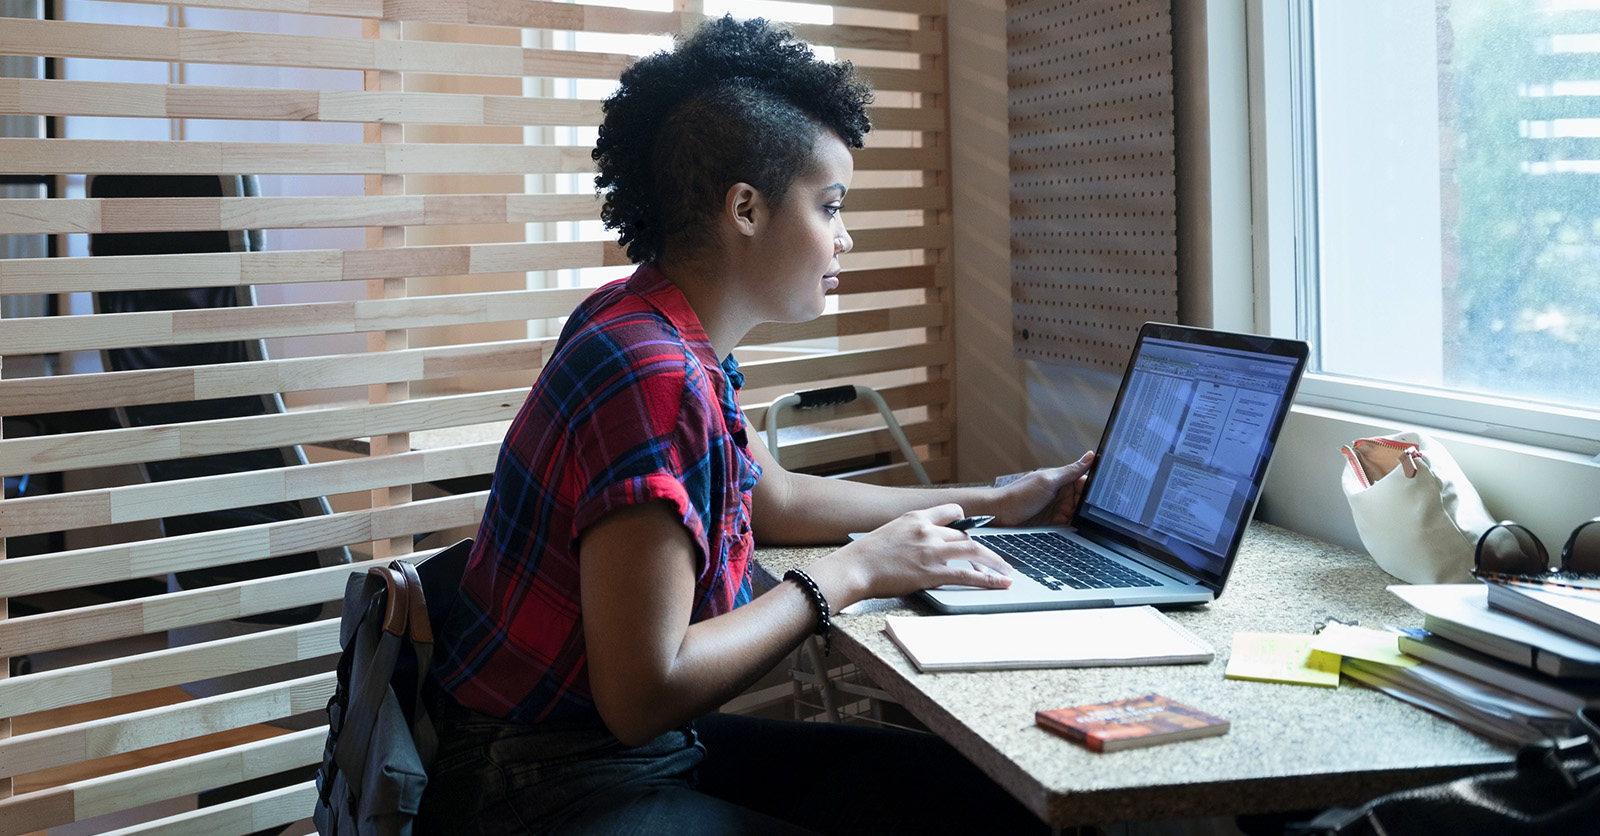 Creative businesswoman using laptop at window in office